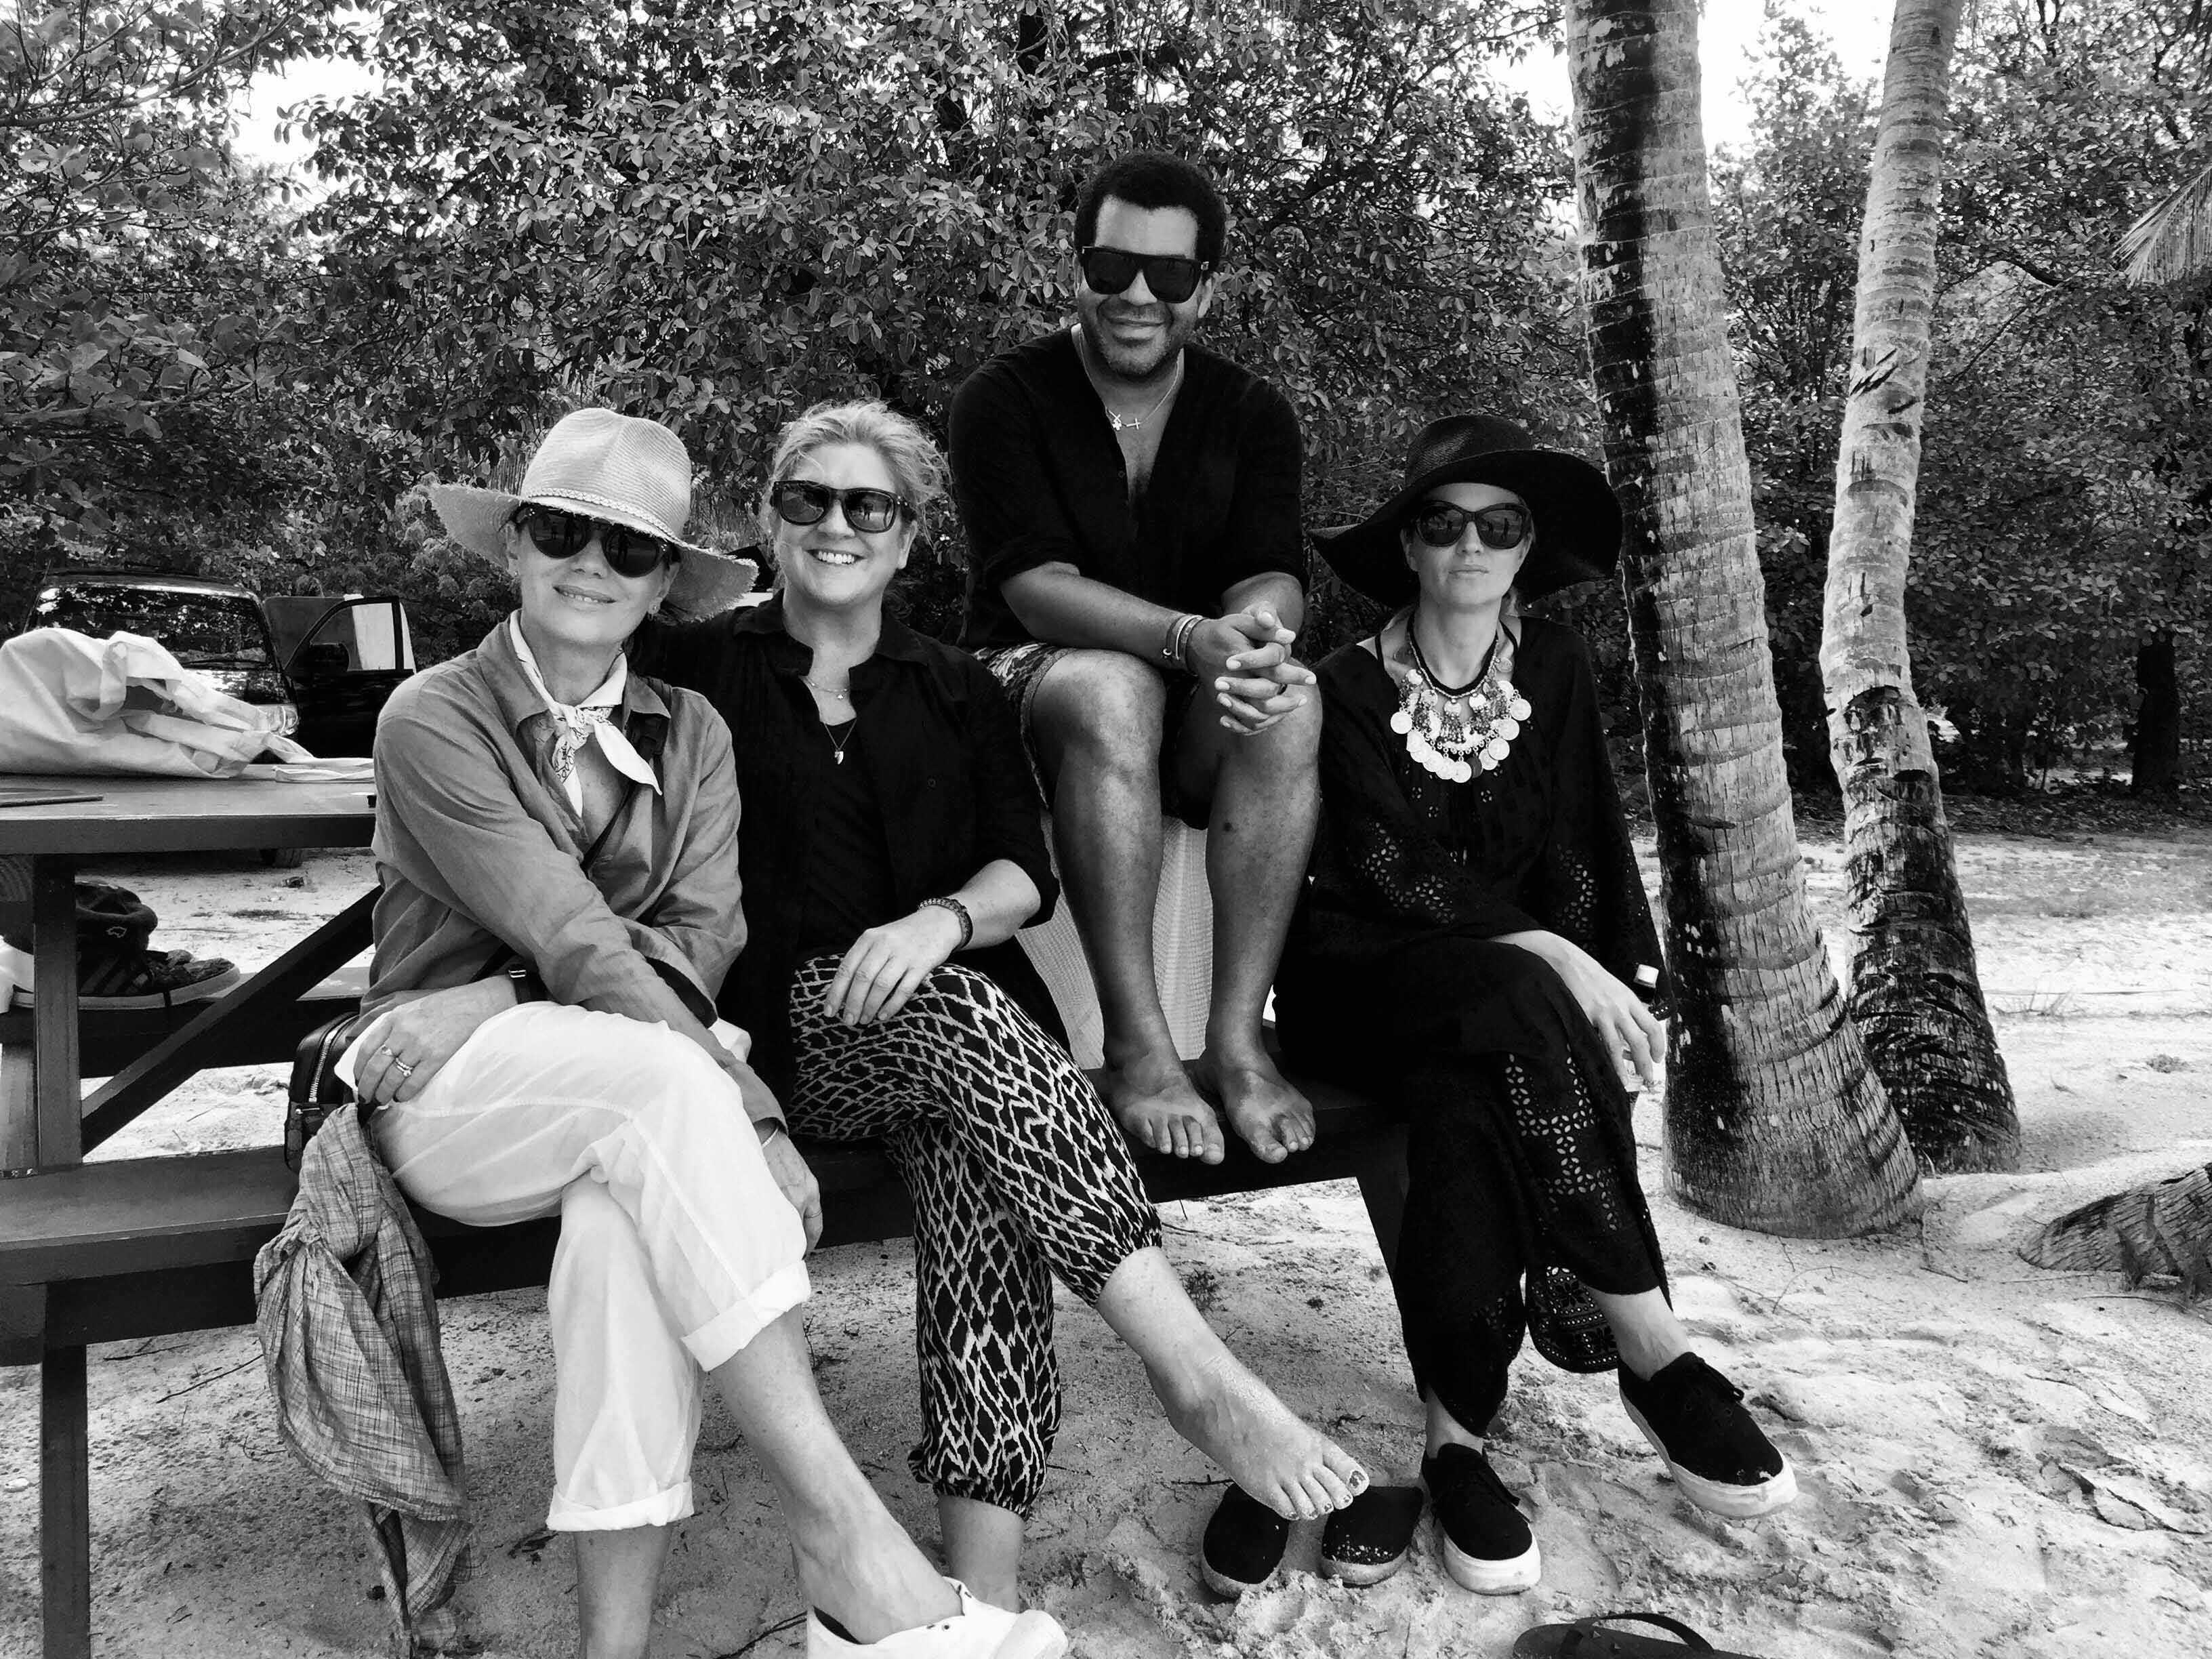 A black and white image of Nicky Zimmermann, Jodie Boland, Ben Skervin and Michell Jank